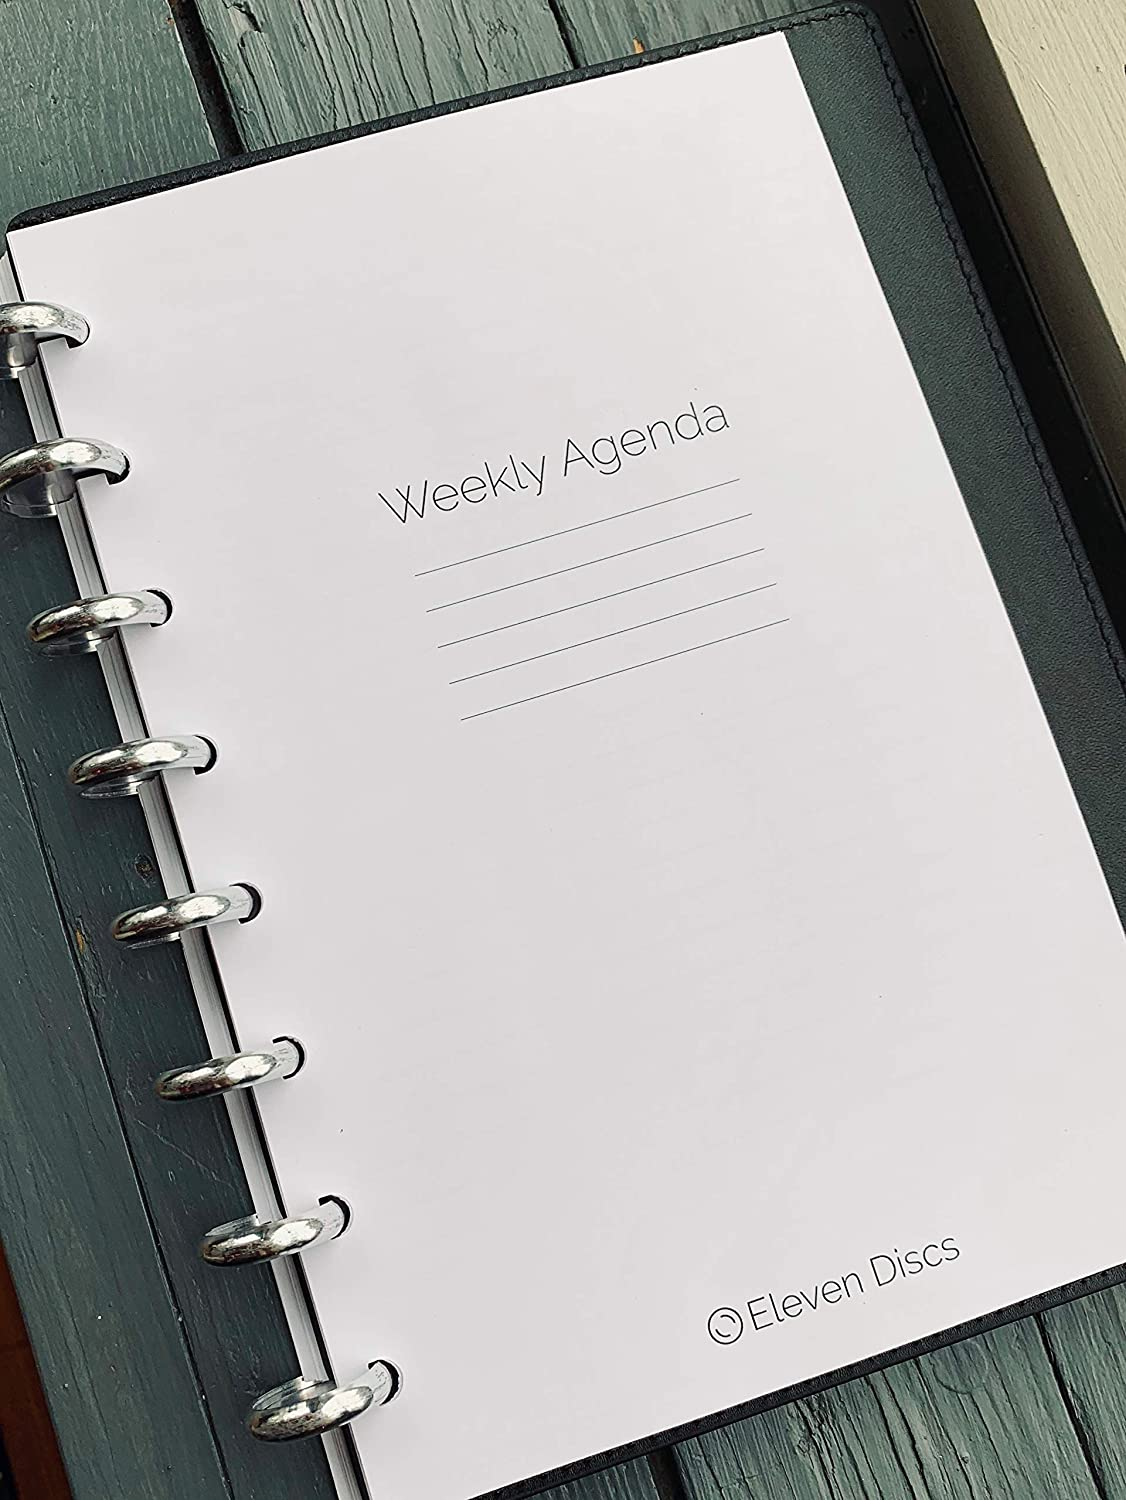 Undated Vertical Weekly Agenda Discbound Premium Heavyweight Junior Notebook Paper Refills Punched for Circa, Arc, TUL (52 Sheets)